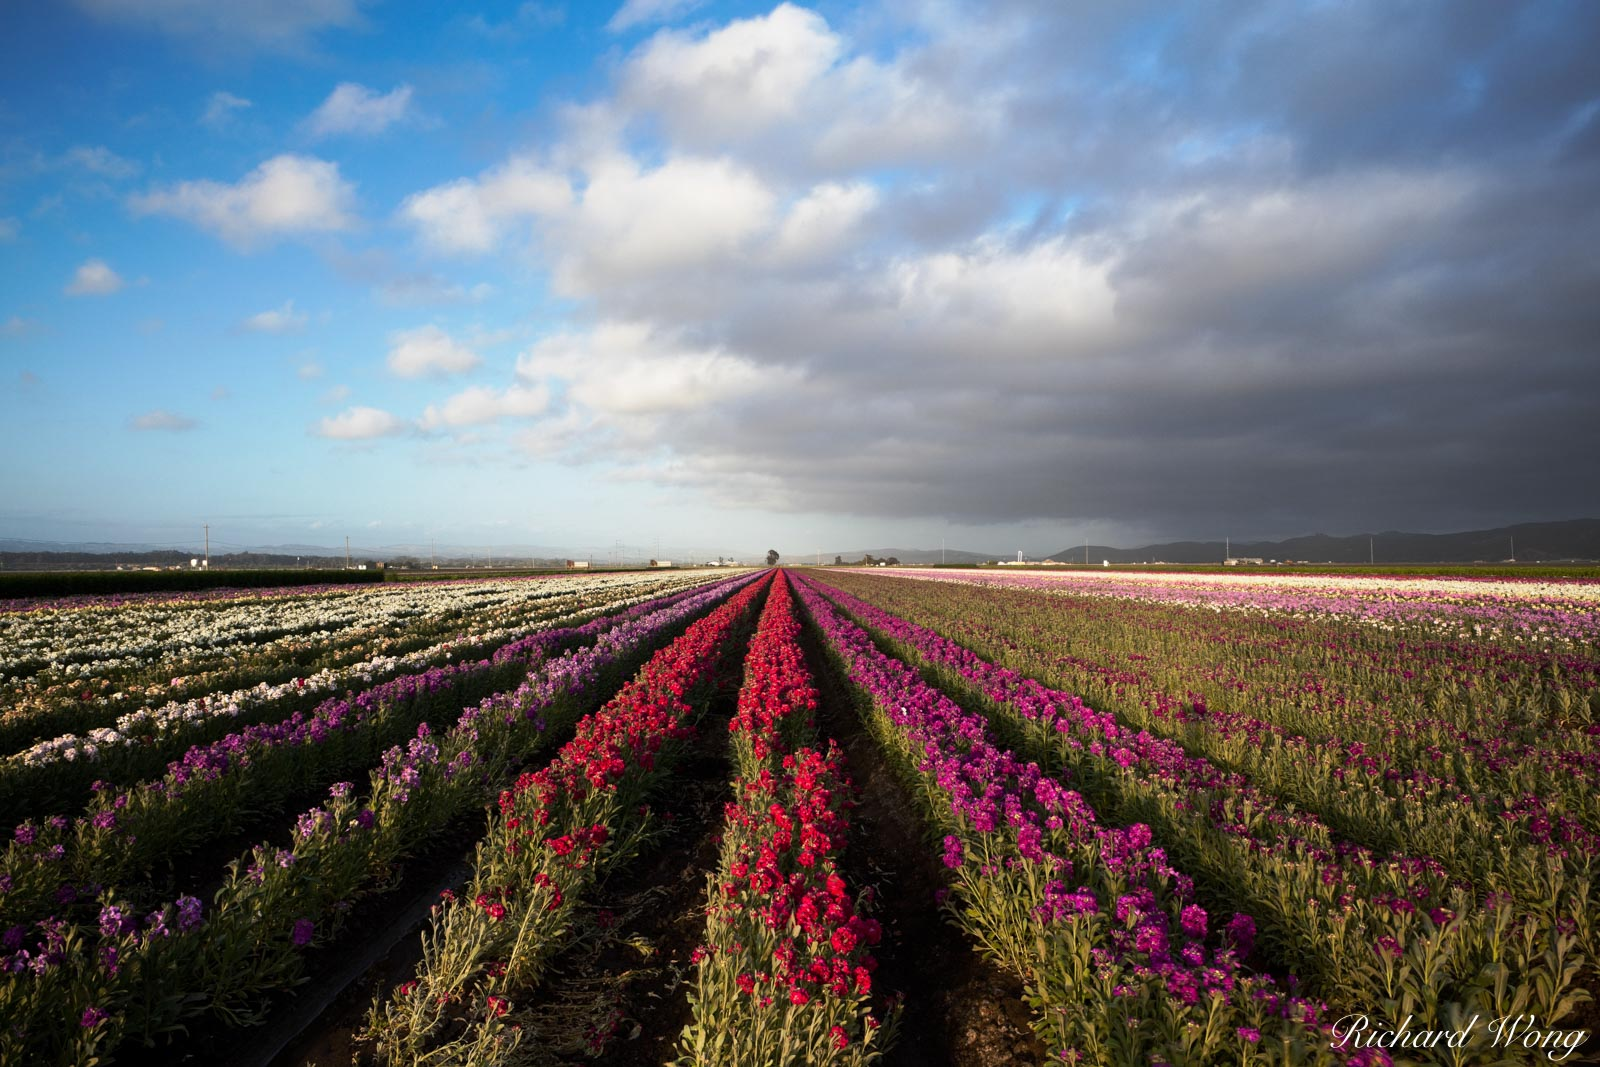 Flower Fields, Lompoc, California Many commercially-grown flowers come from Lompoc so I found myself here seeking out some leading...